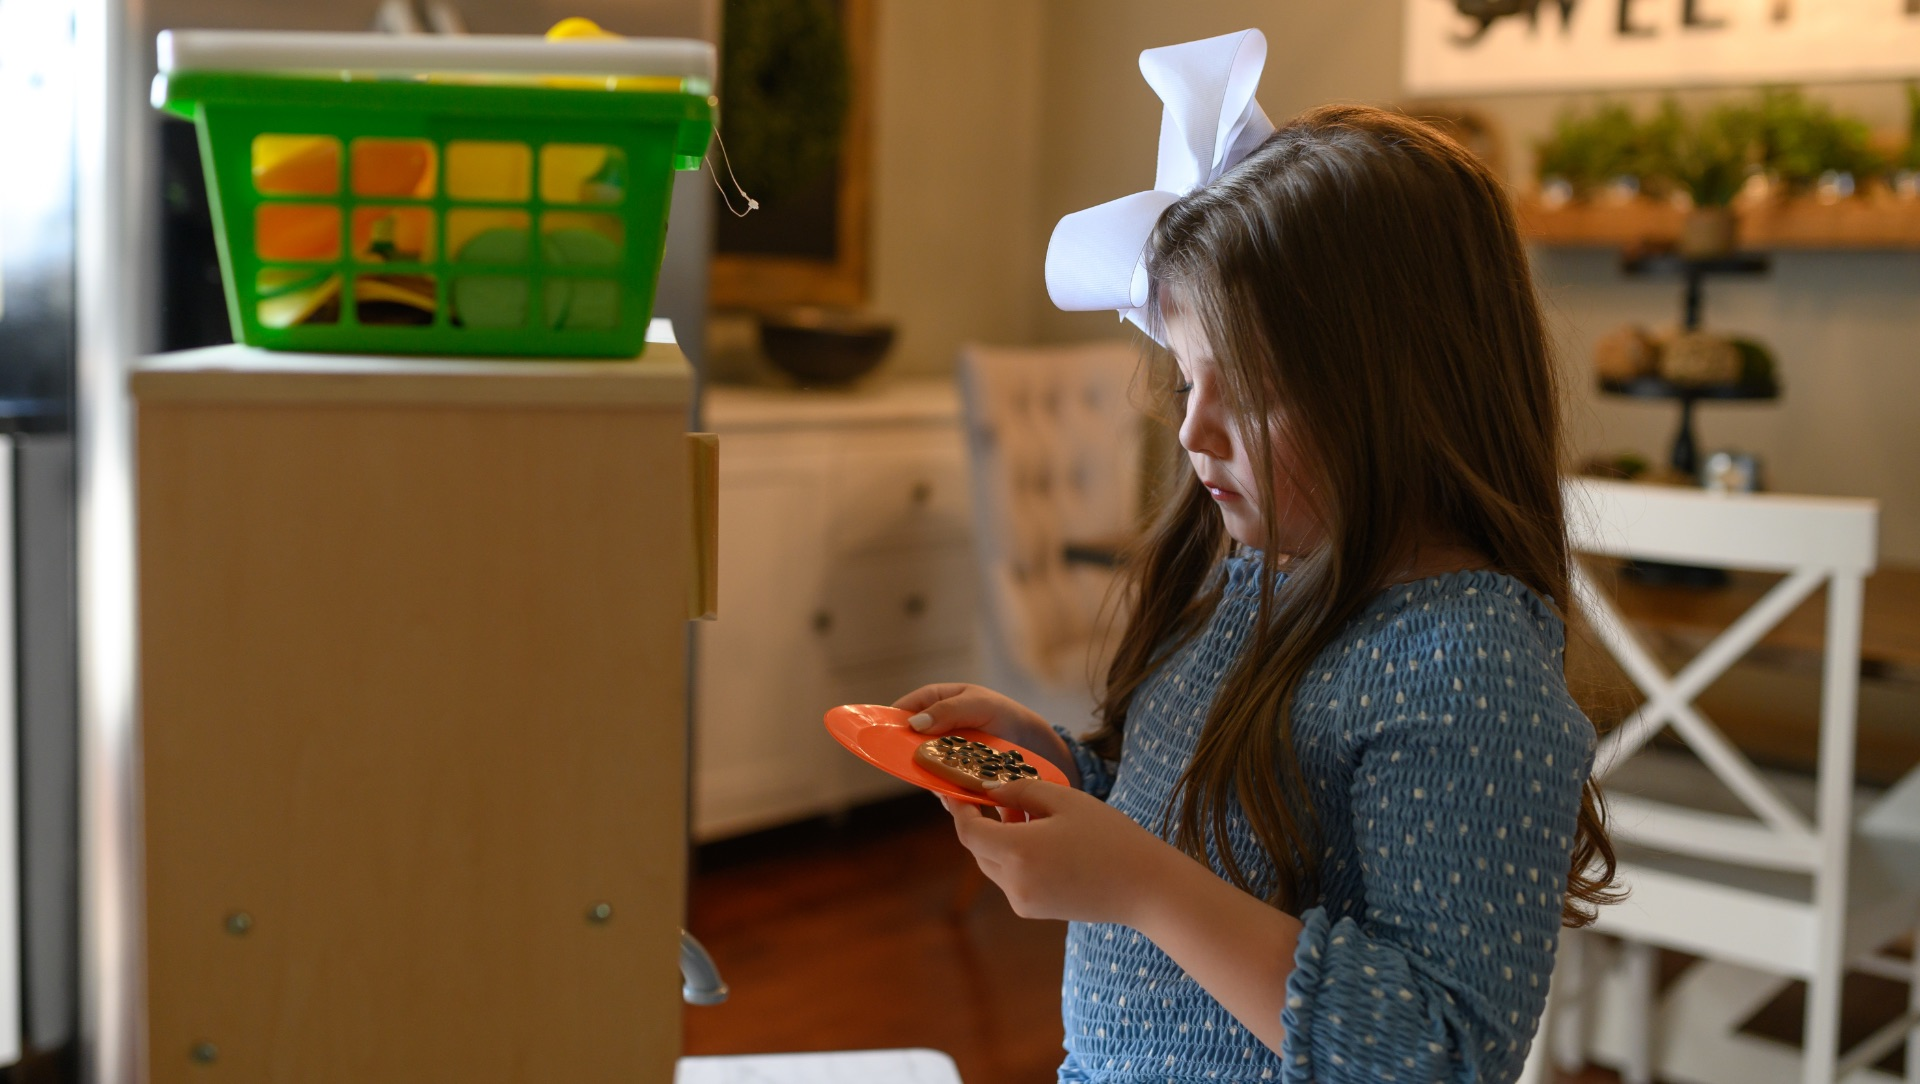 Henley stands in a play kitchen looking down at a cookie on an orange plate that she is holding.